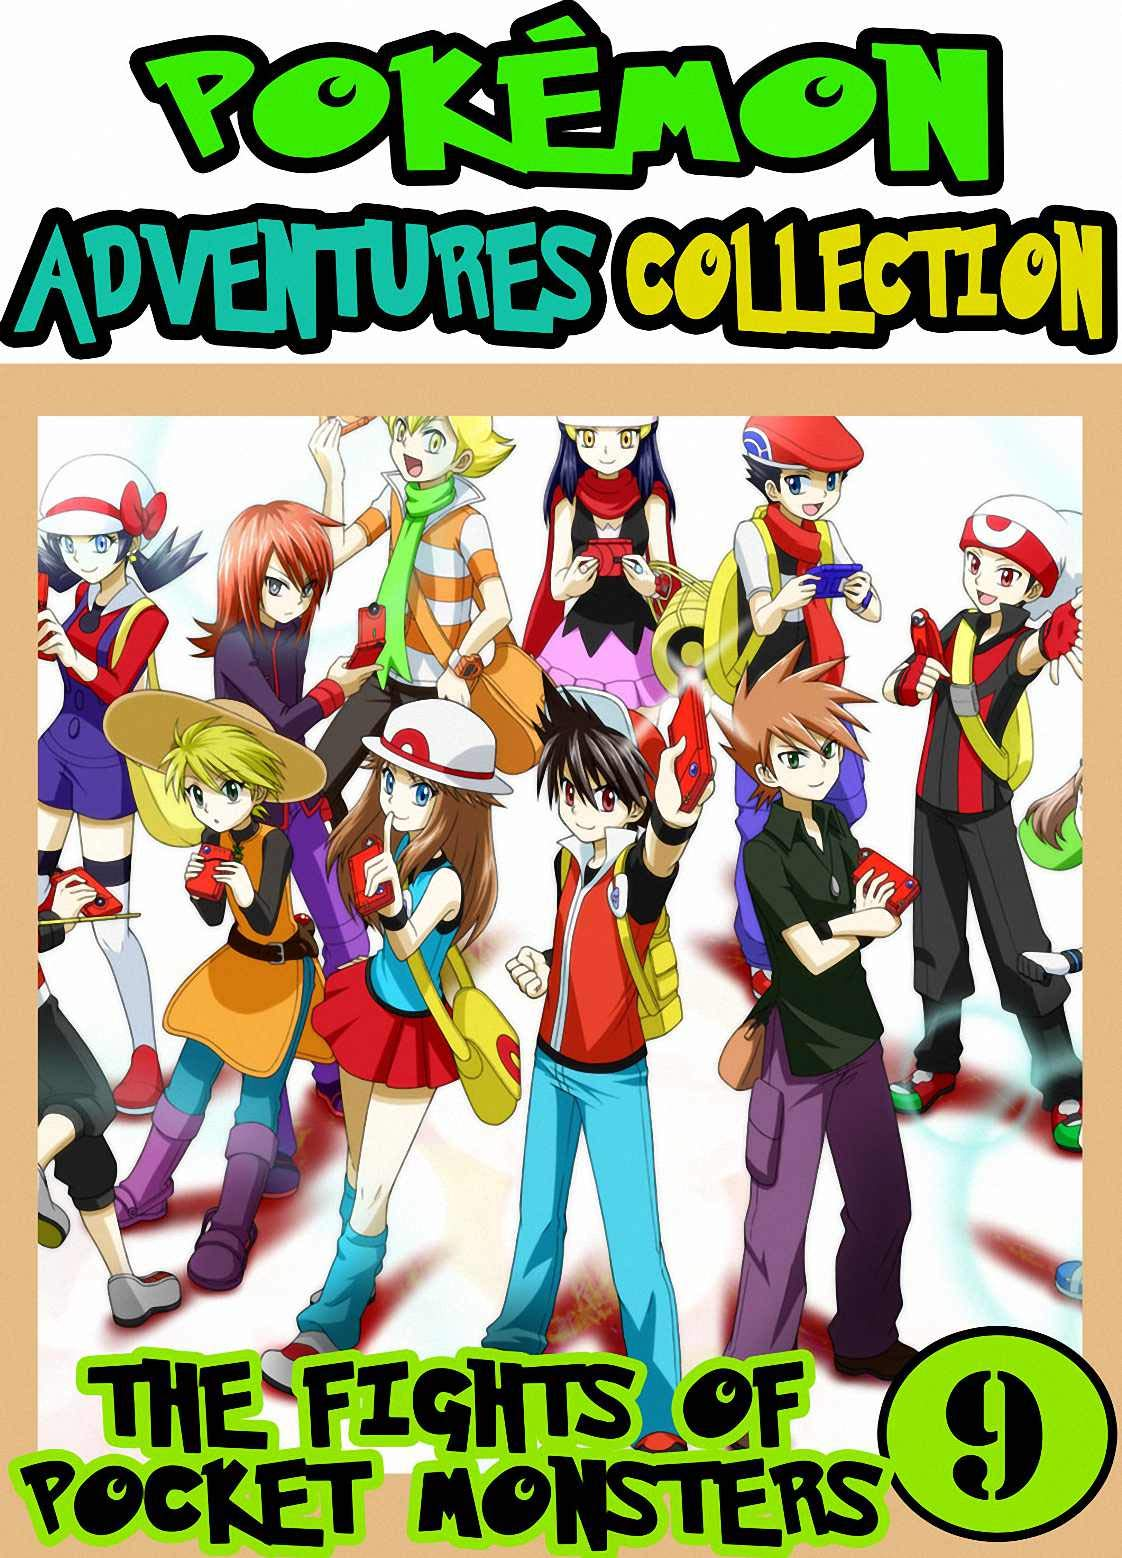 Pocket Fights: Collection 9 - Manga Pokemon Collection Adventures Graphic Novel For Boys, Girls, Kids